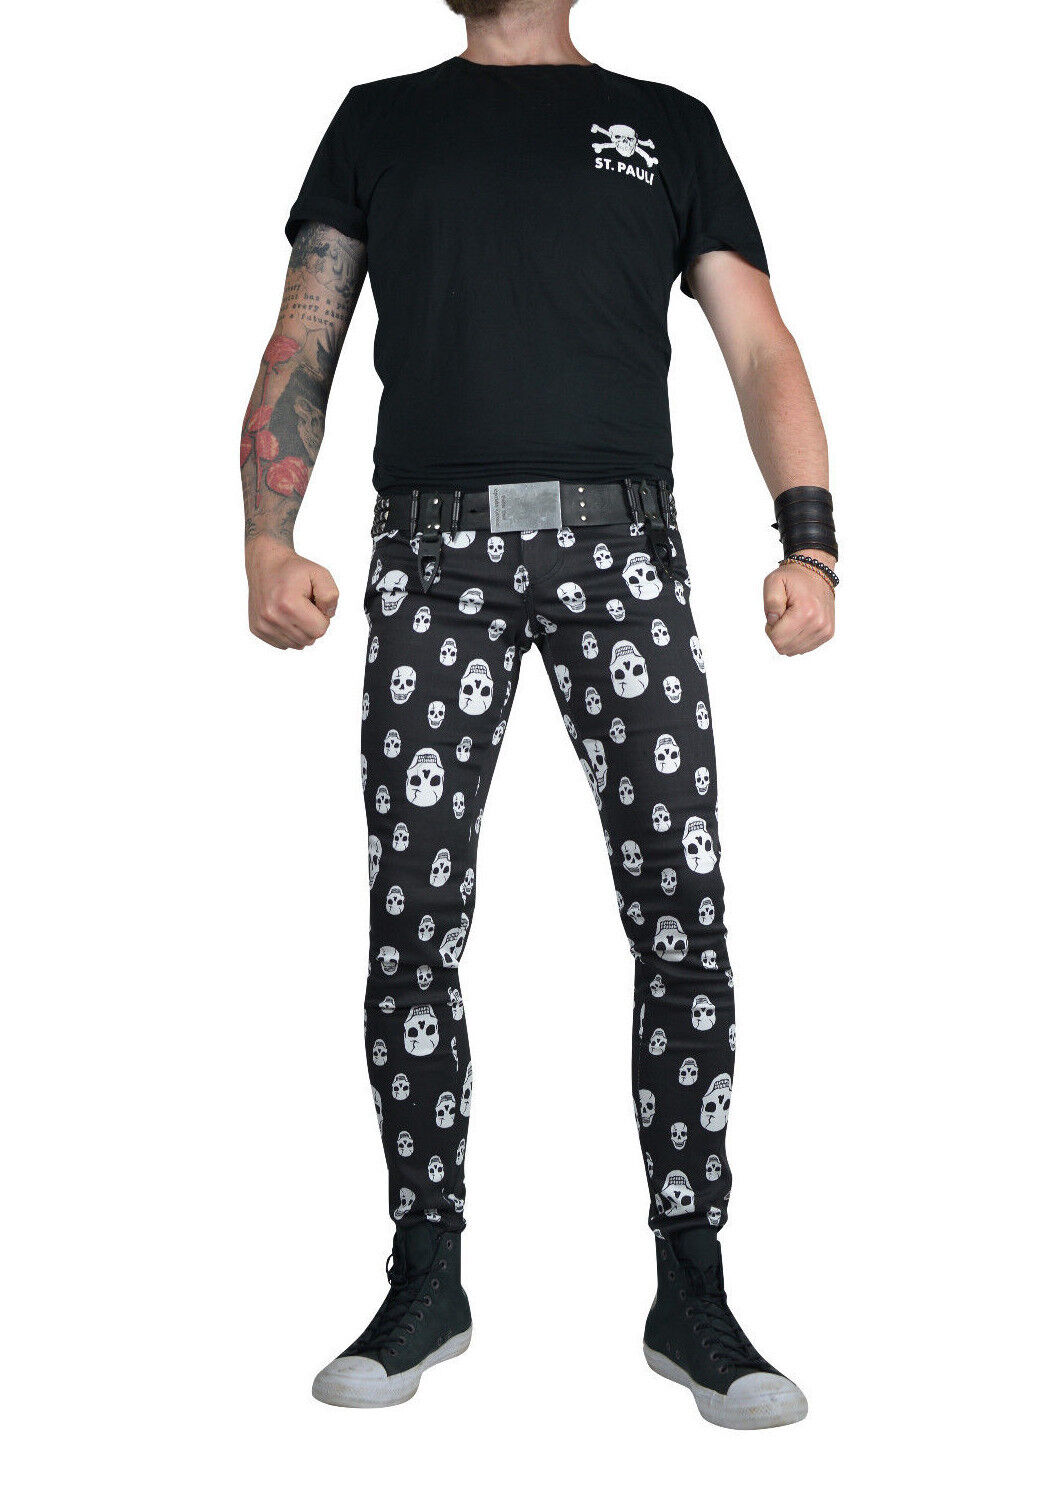 TRIPP TOXIC SKULL ANARCHY SKINNY JEANS ROCKSTAR UNISEX FIT PUNK ROCK SLIM PANTS Clothing, Shoes & Accessories